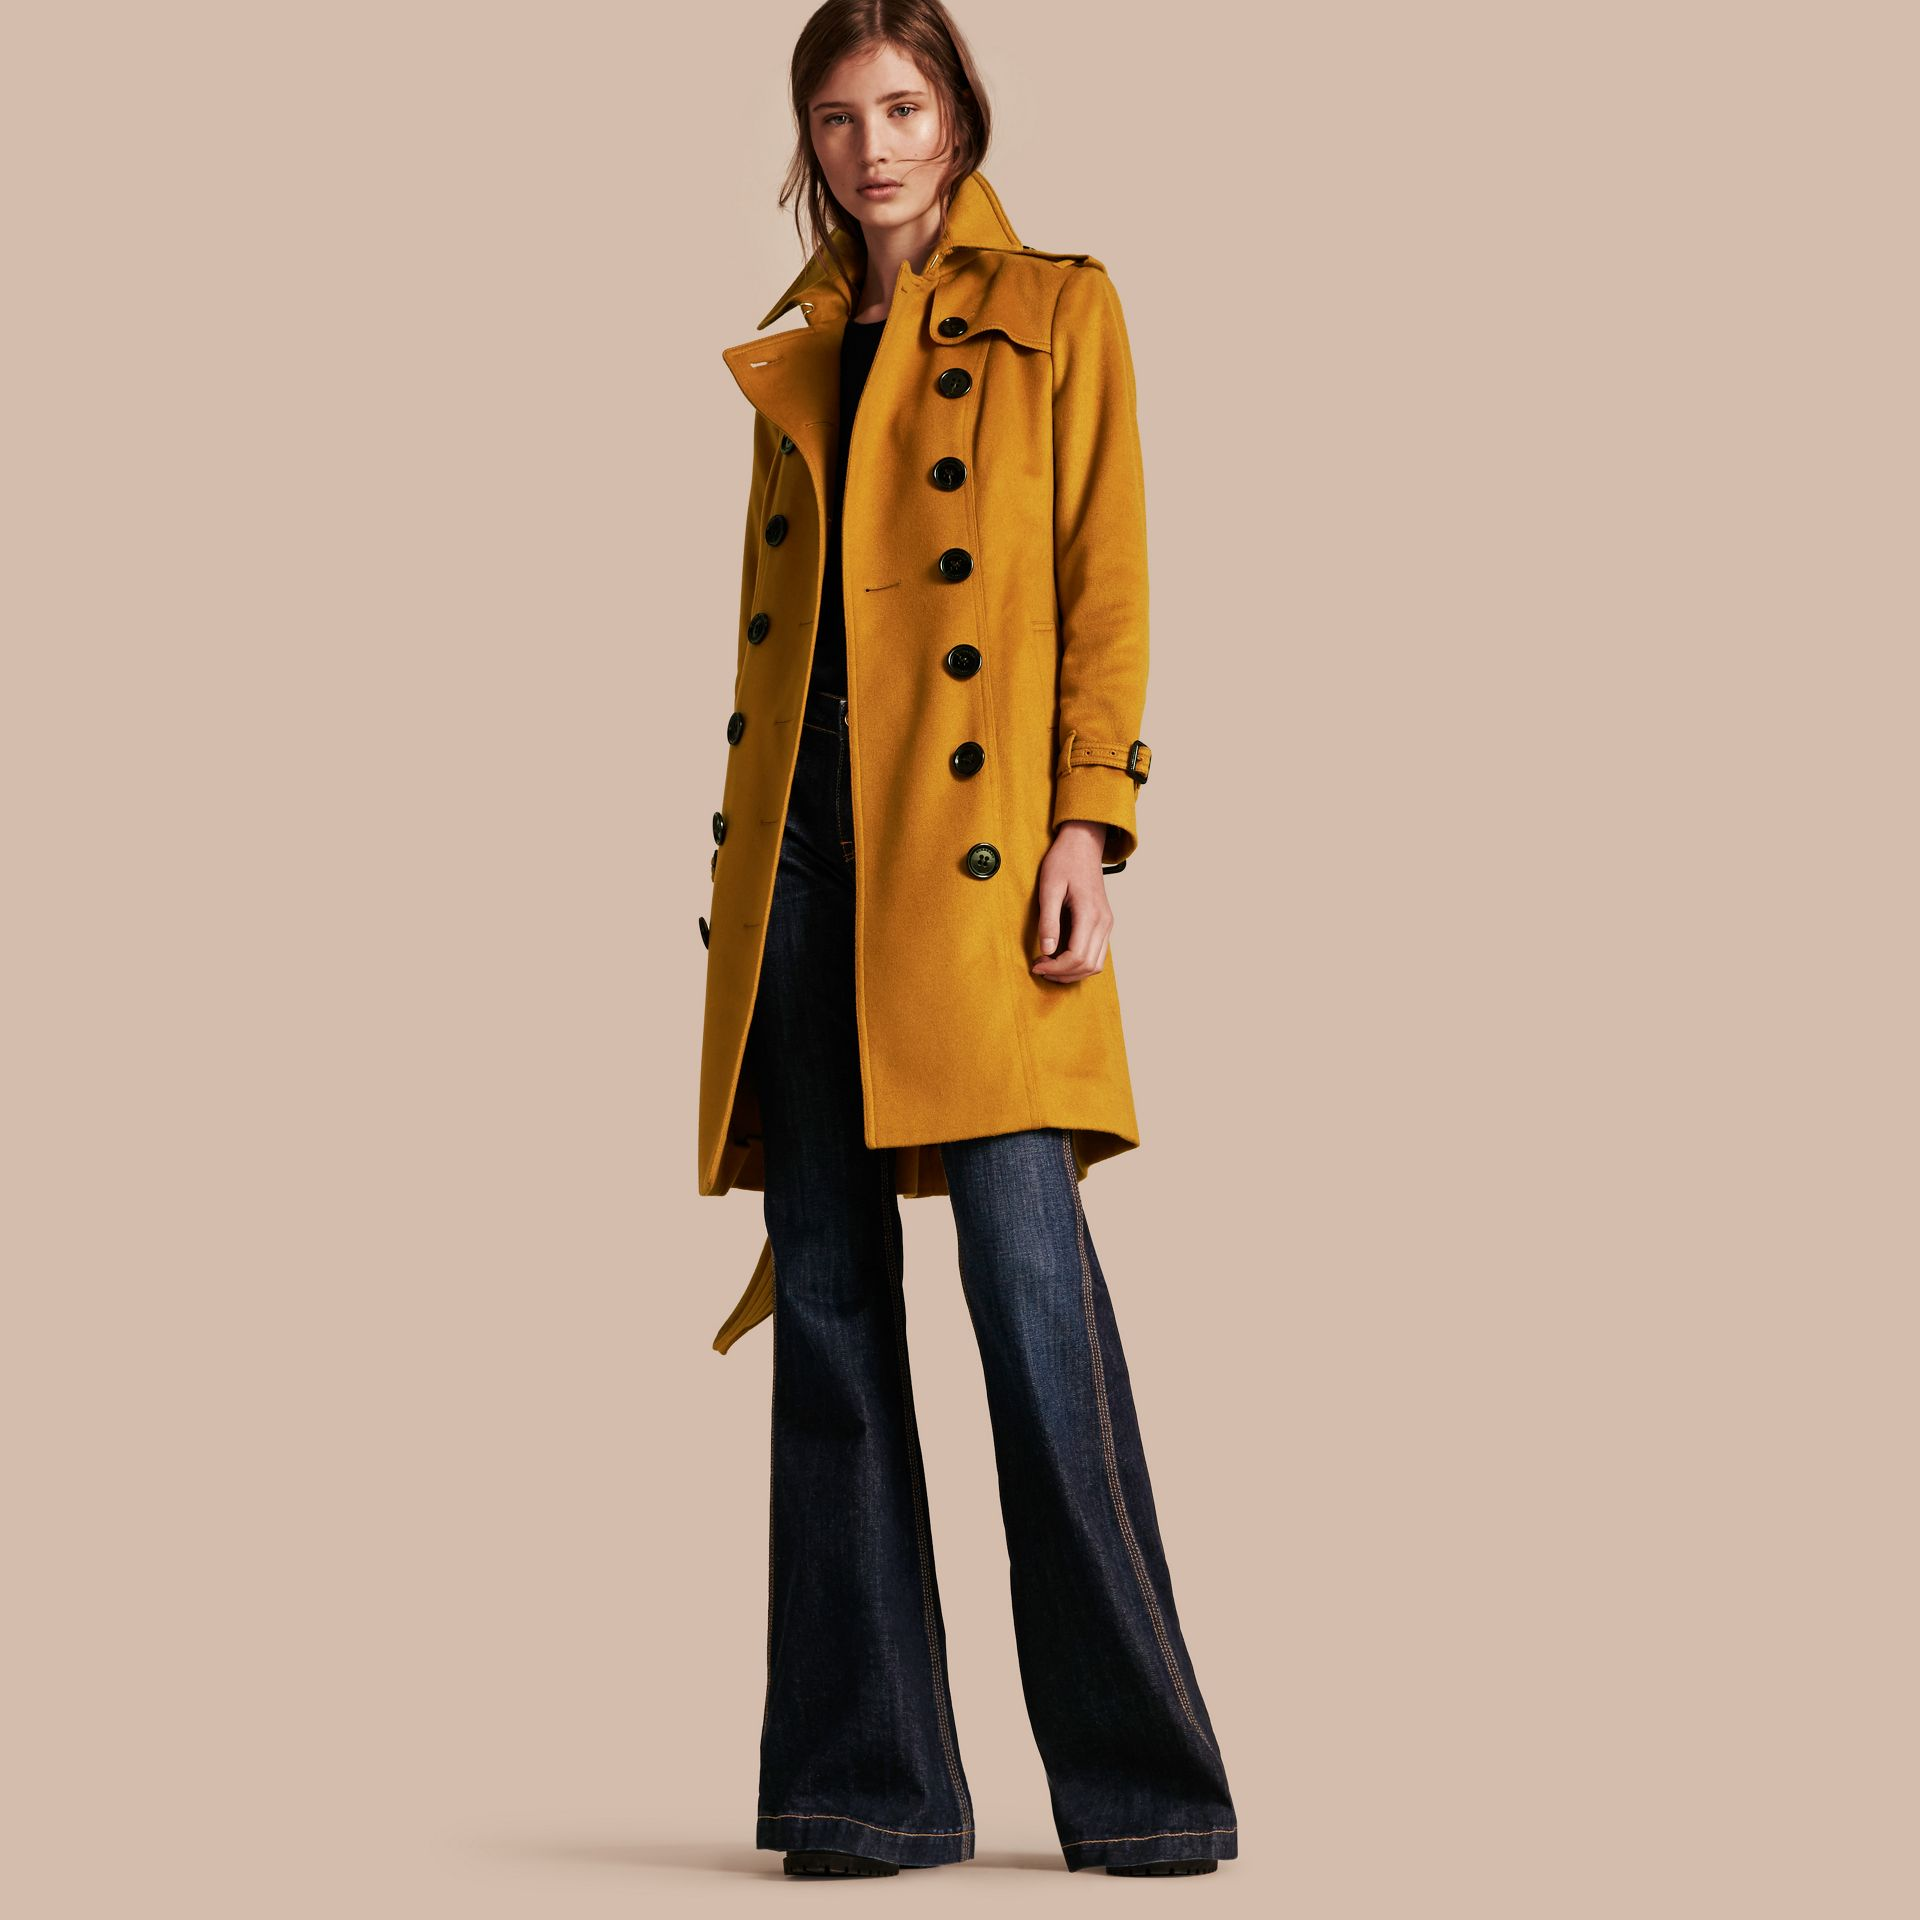 Umber yellow Sandringham Fit Cashmere Trench Coat Umber Yellow - gallery image 1